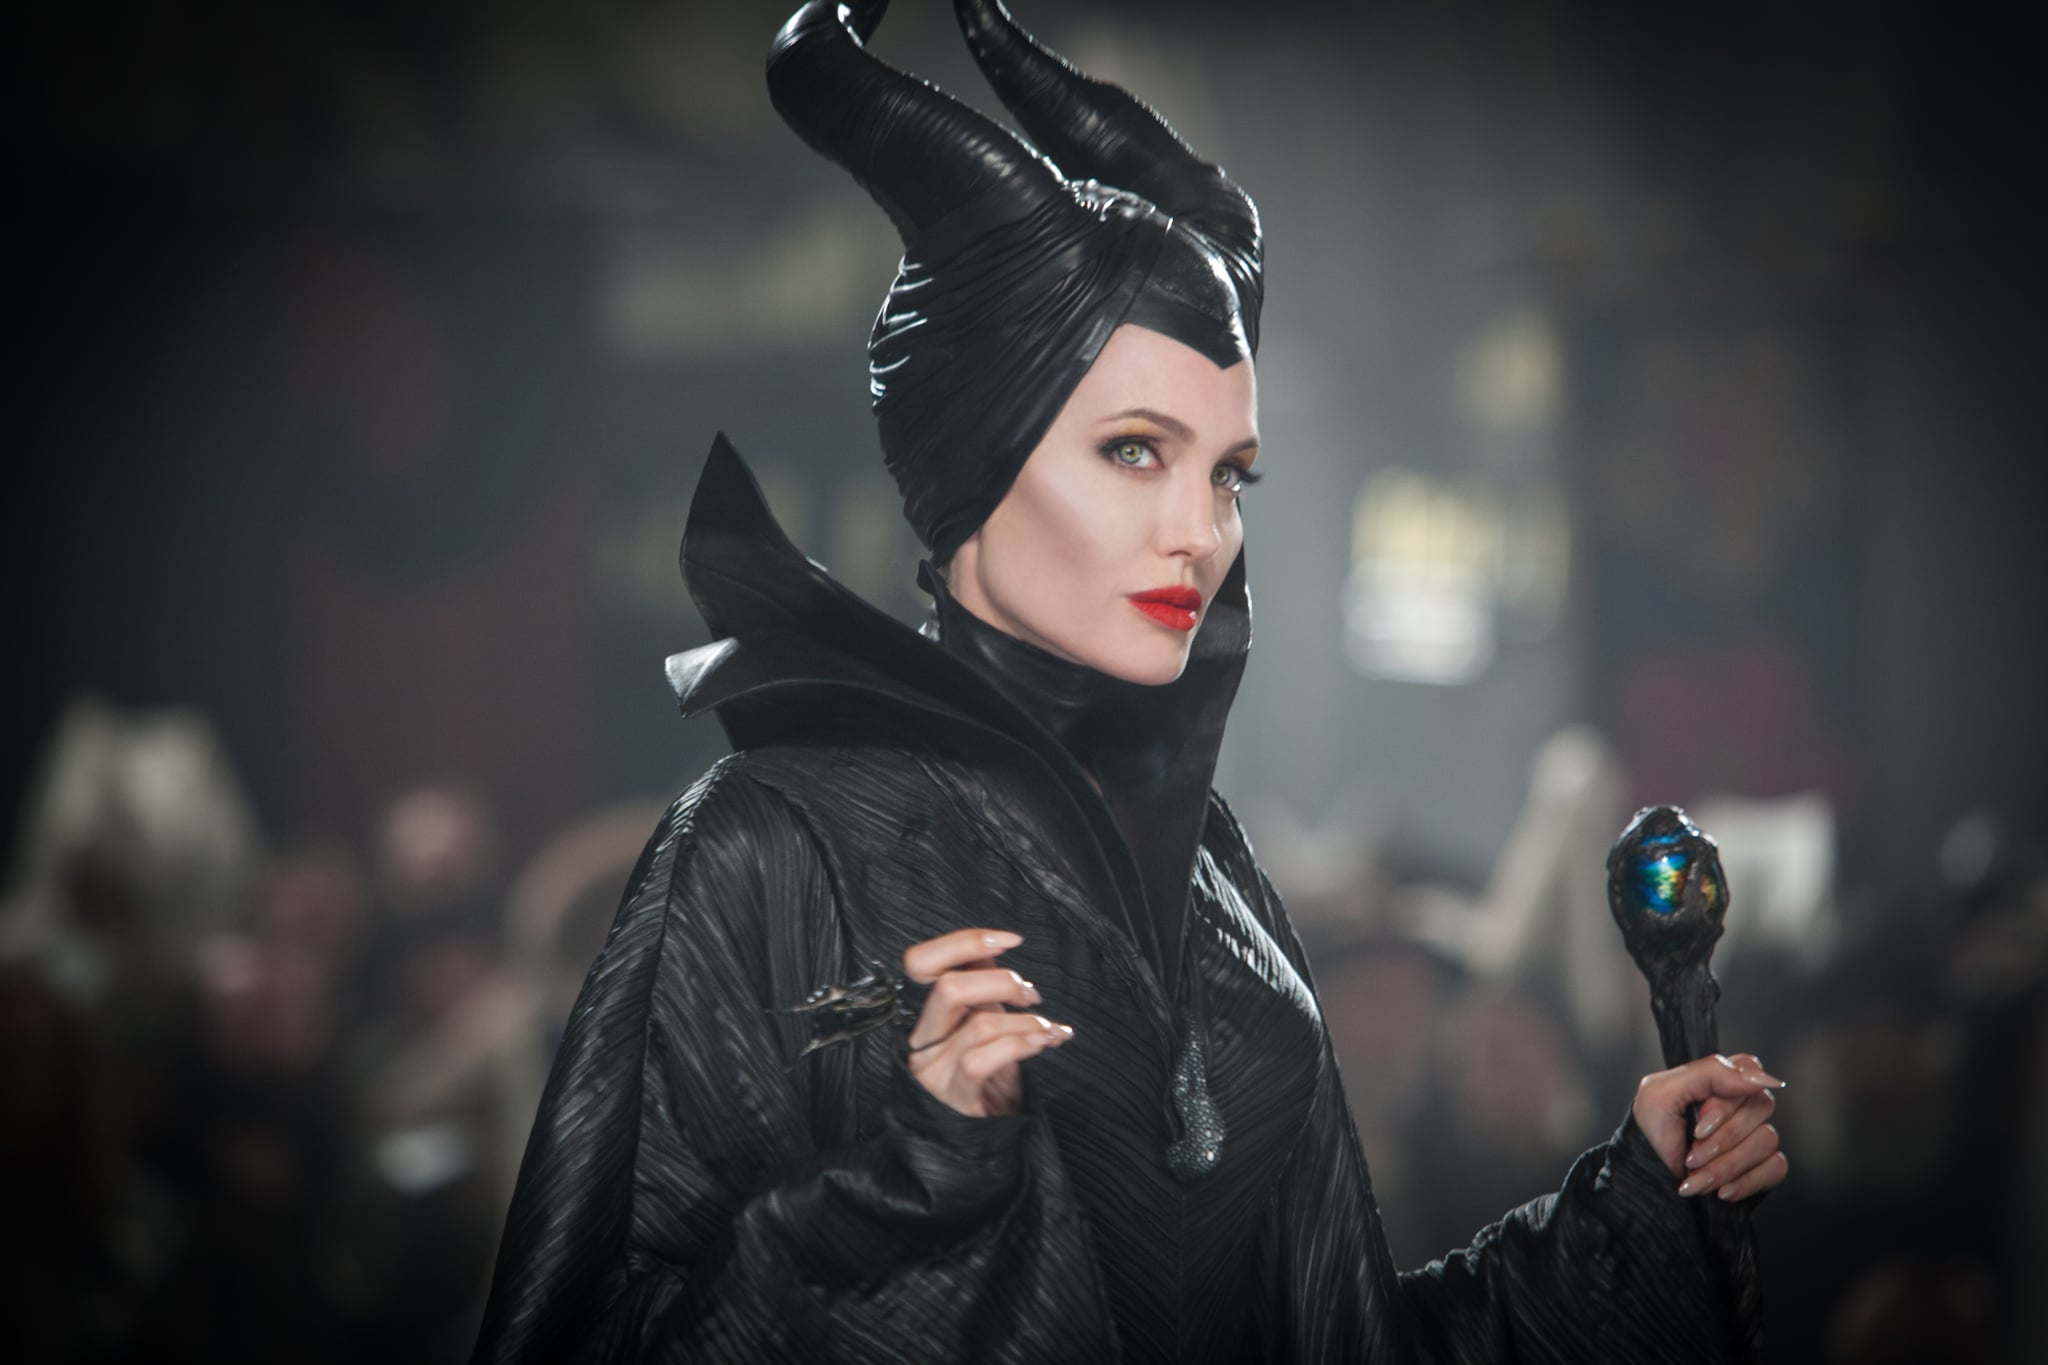 Maleficent From Maleficent 500 Pop Culture Halloween